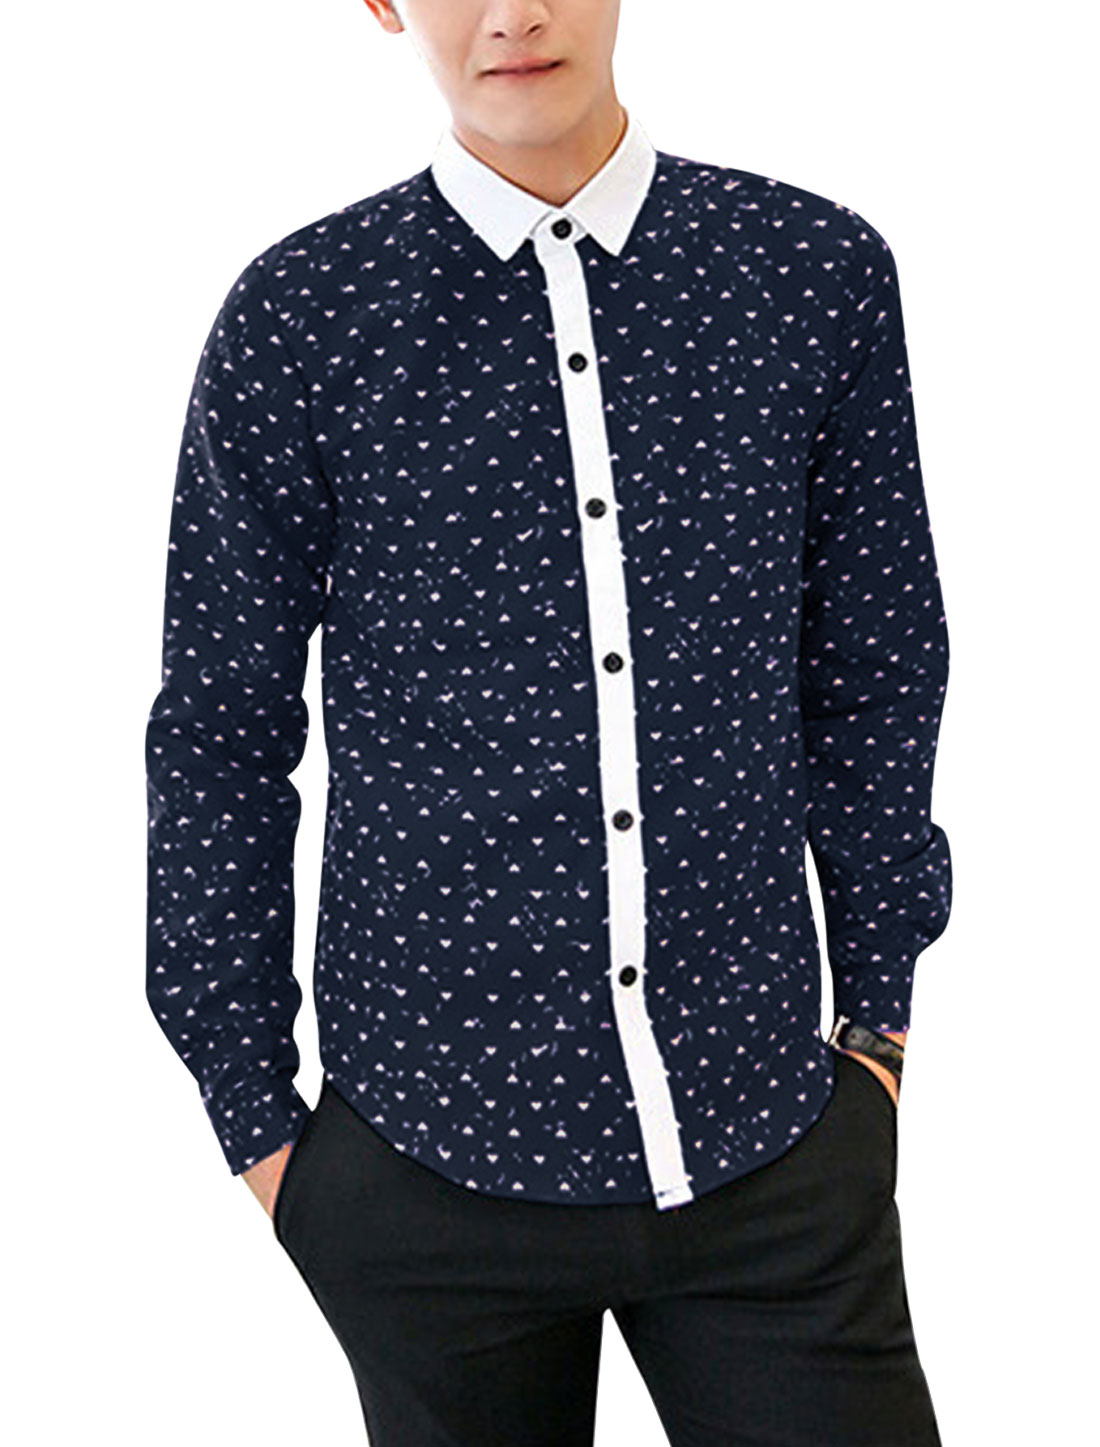 Men All-over Heart Print Contrast Point Collar Fashion Shirt Navy Blue M